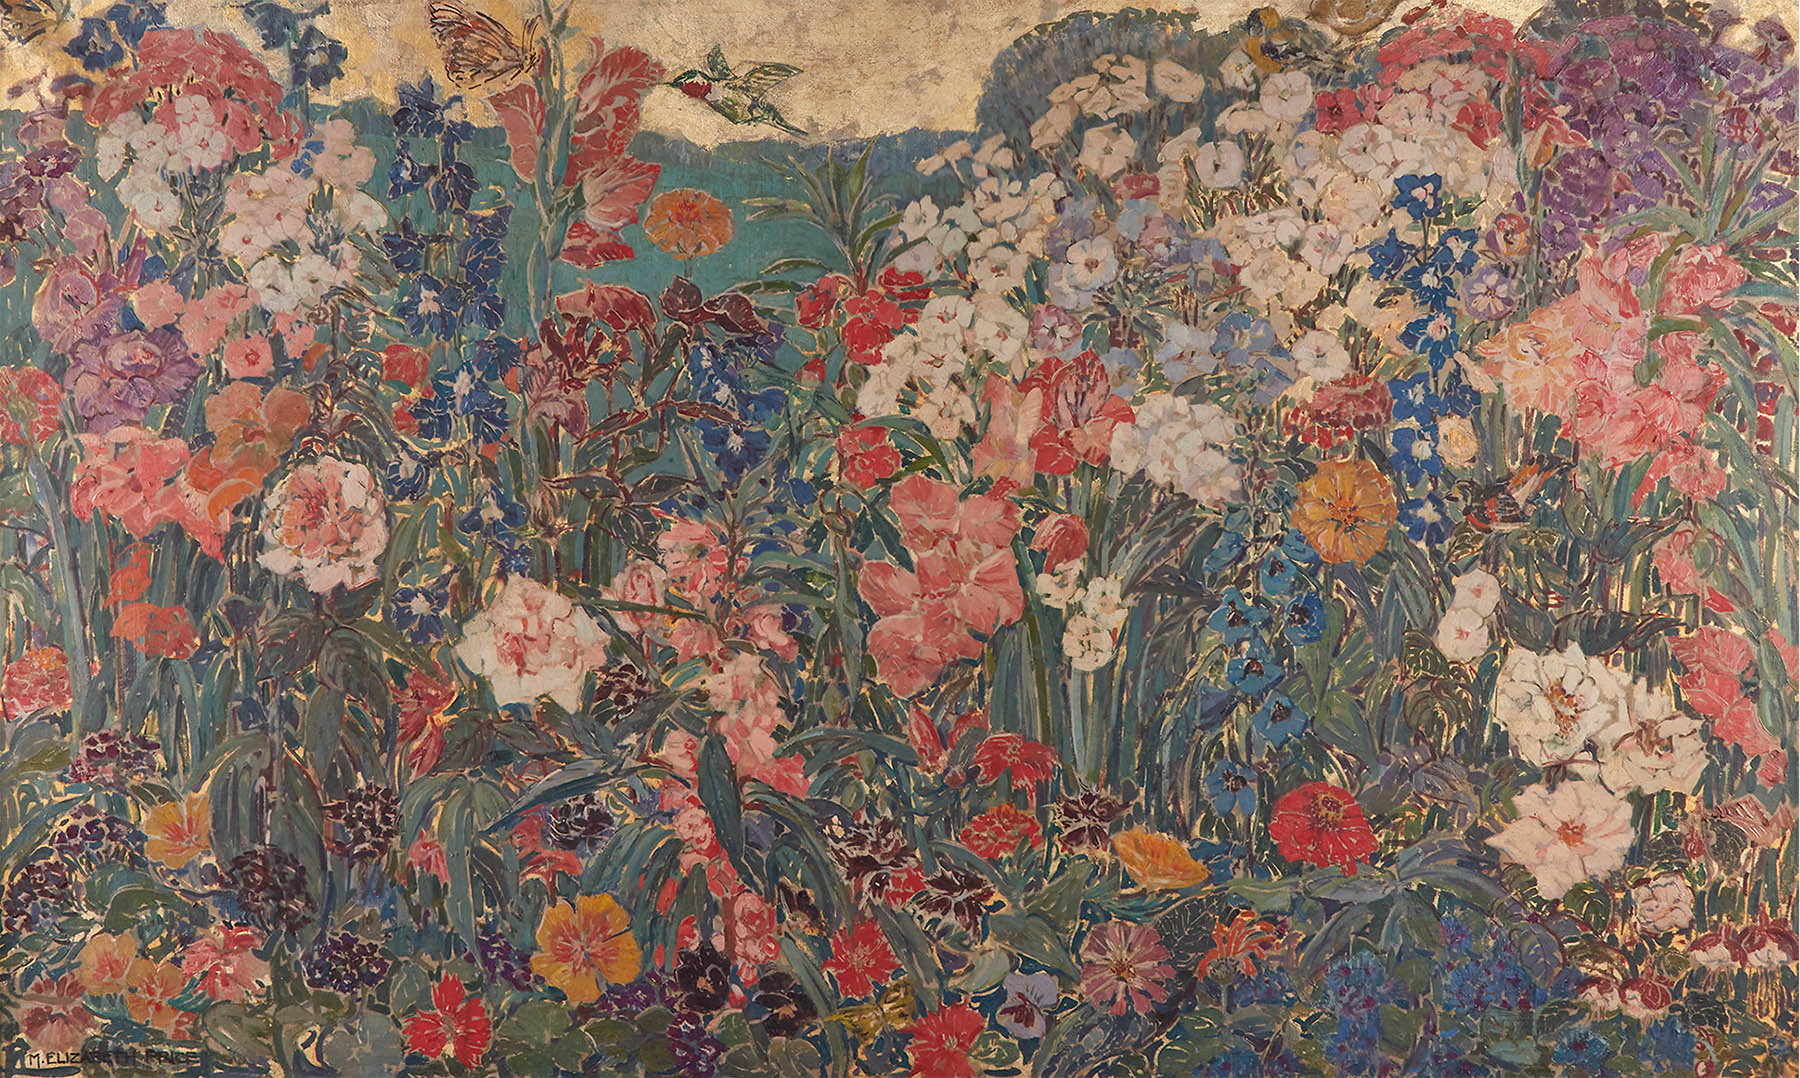 Mary Elizabeth Price painting, Mille Fleurs